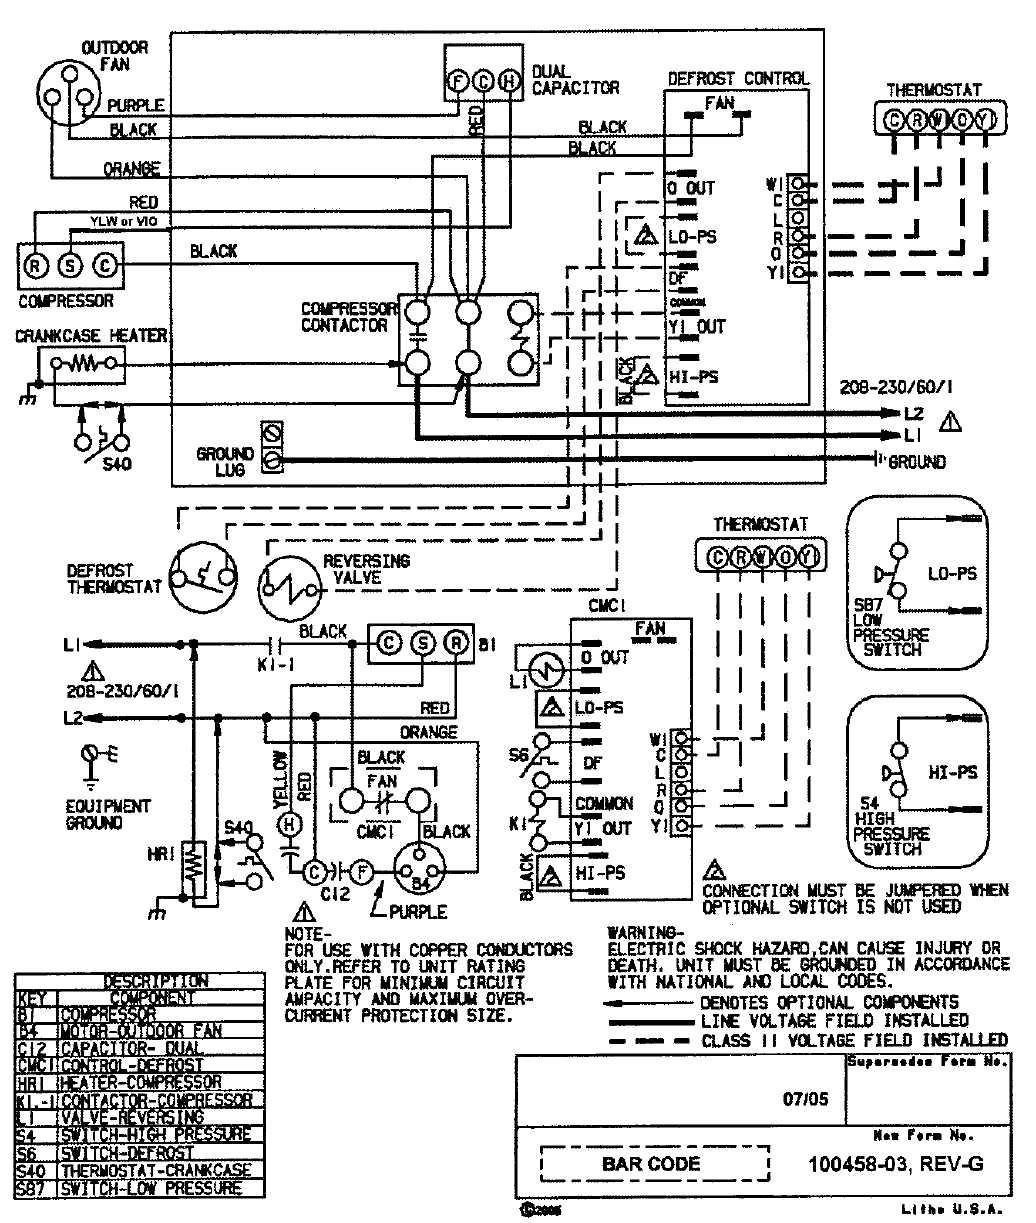 Goettl Heat Pump Wiring Diagram